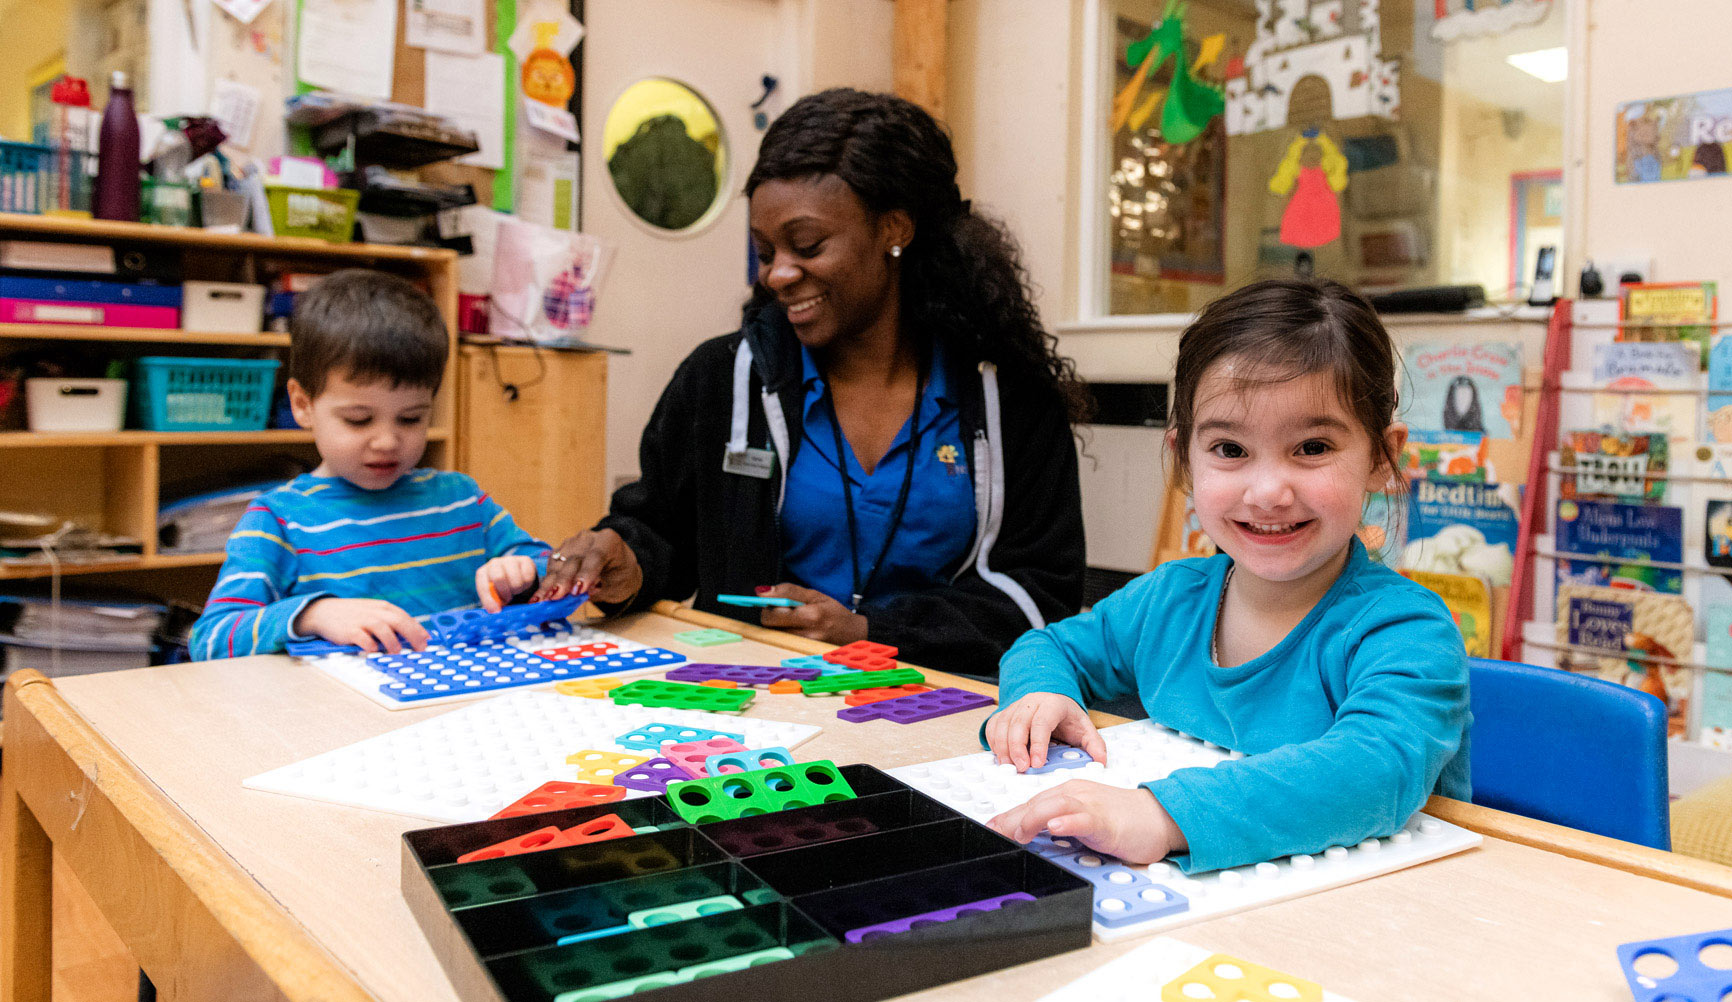 Fees for childcare services at Treetops Nursery in Willesden, London NW10 (half or full day sessions).